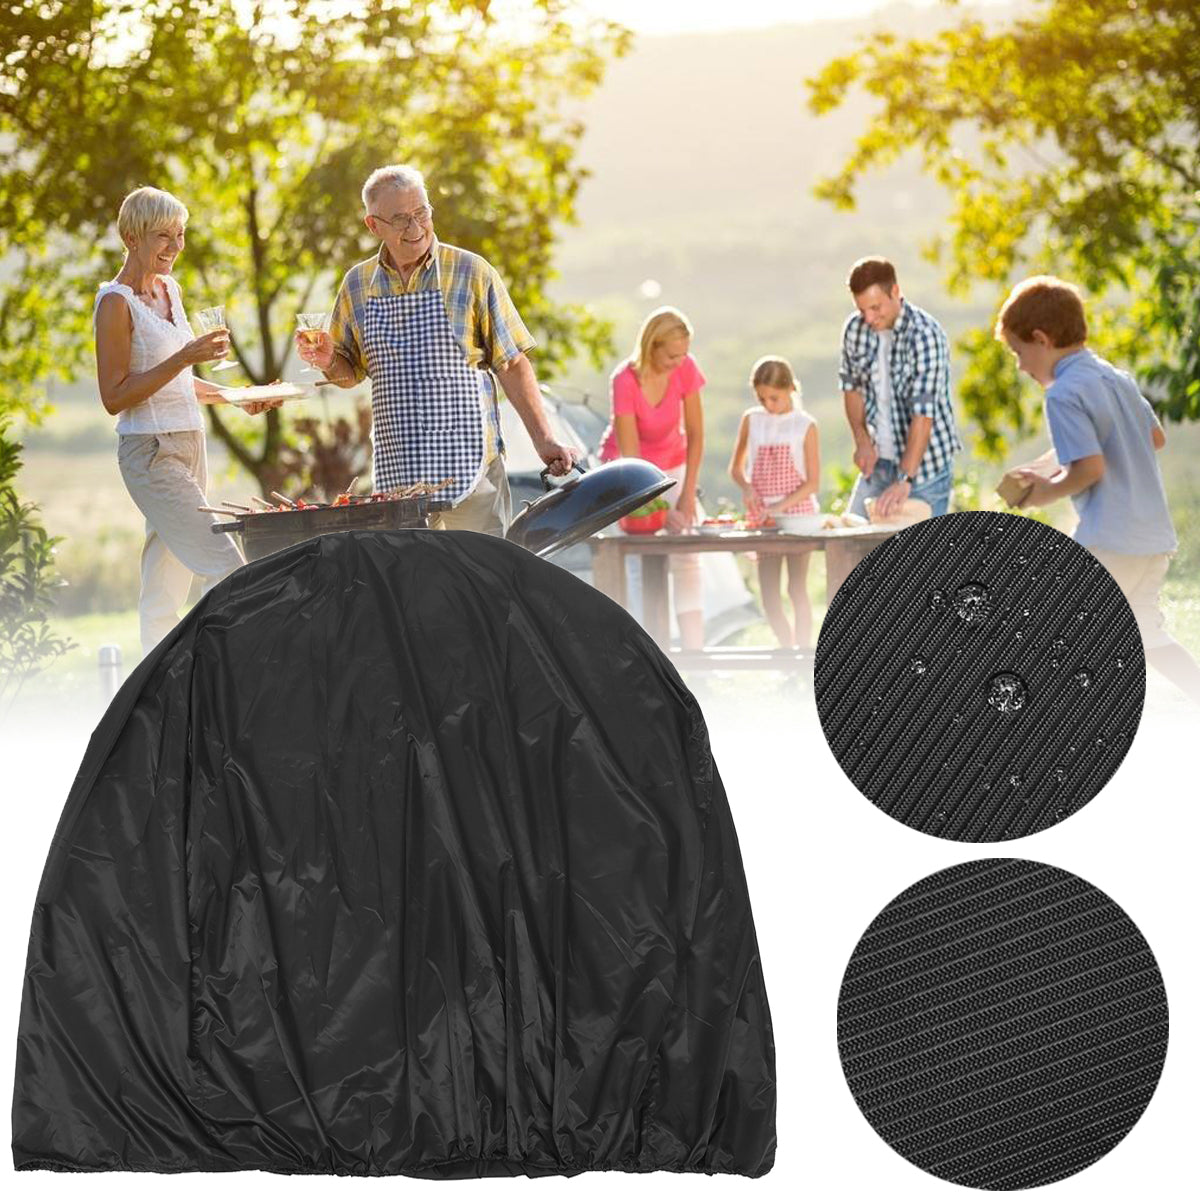 134x64.7x149.3cmBBQGrillCoverOutdoorCamping Picknick Waterdichte Stofregen UV Proof Protector